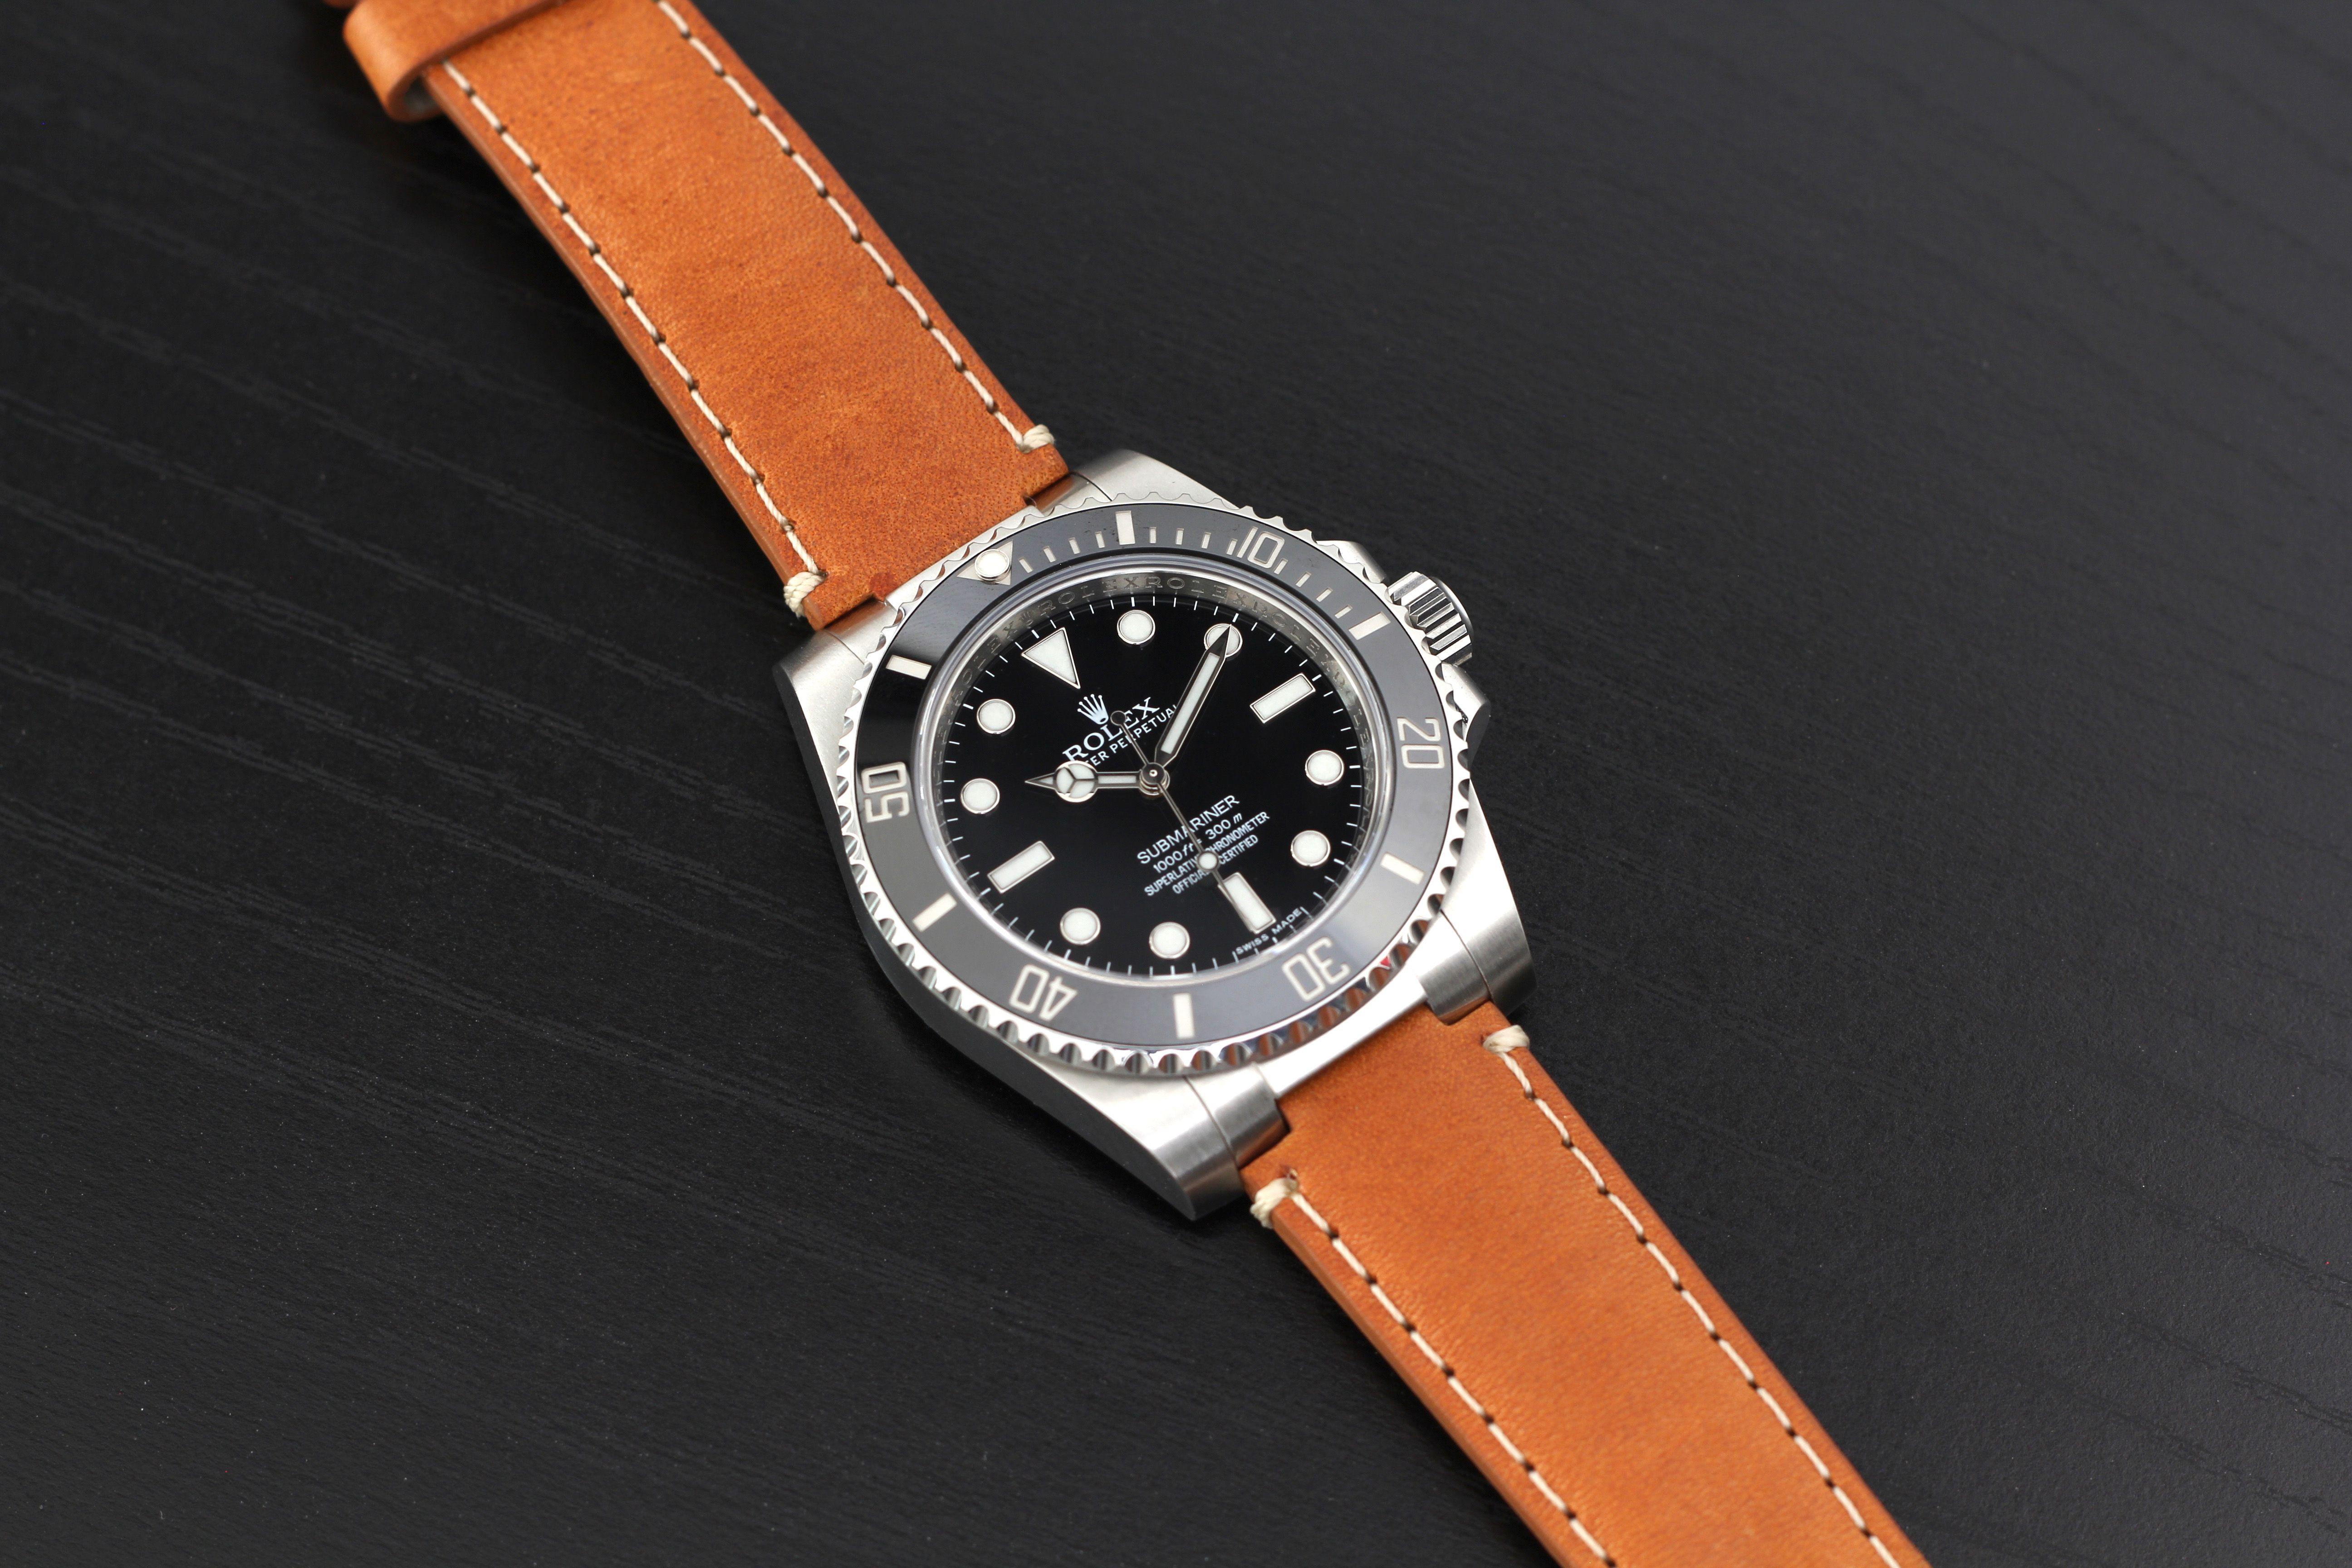 Everest Leather Watch Strap For Rolex Submariner Watch Bands Rolex Leather Watch Strap